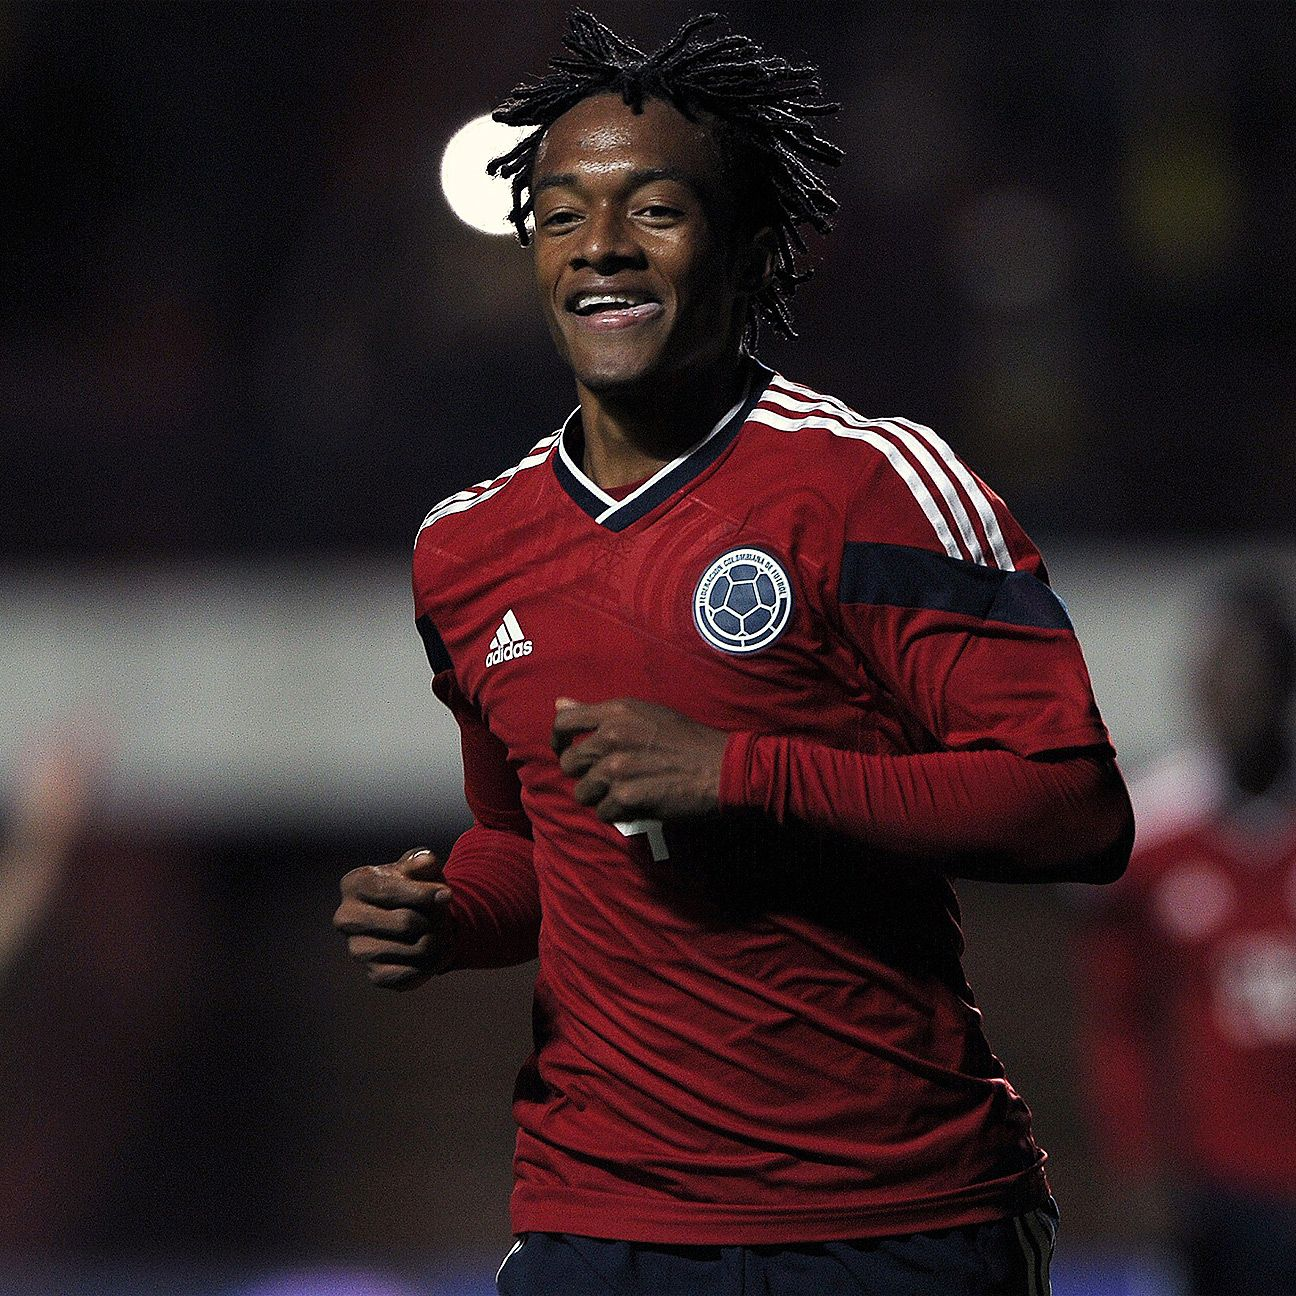 Juan Cuadrado converted a late penalty to help seal Colombia's win over Jordan.